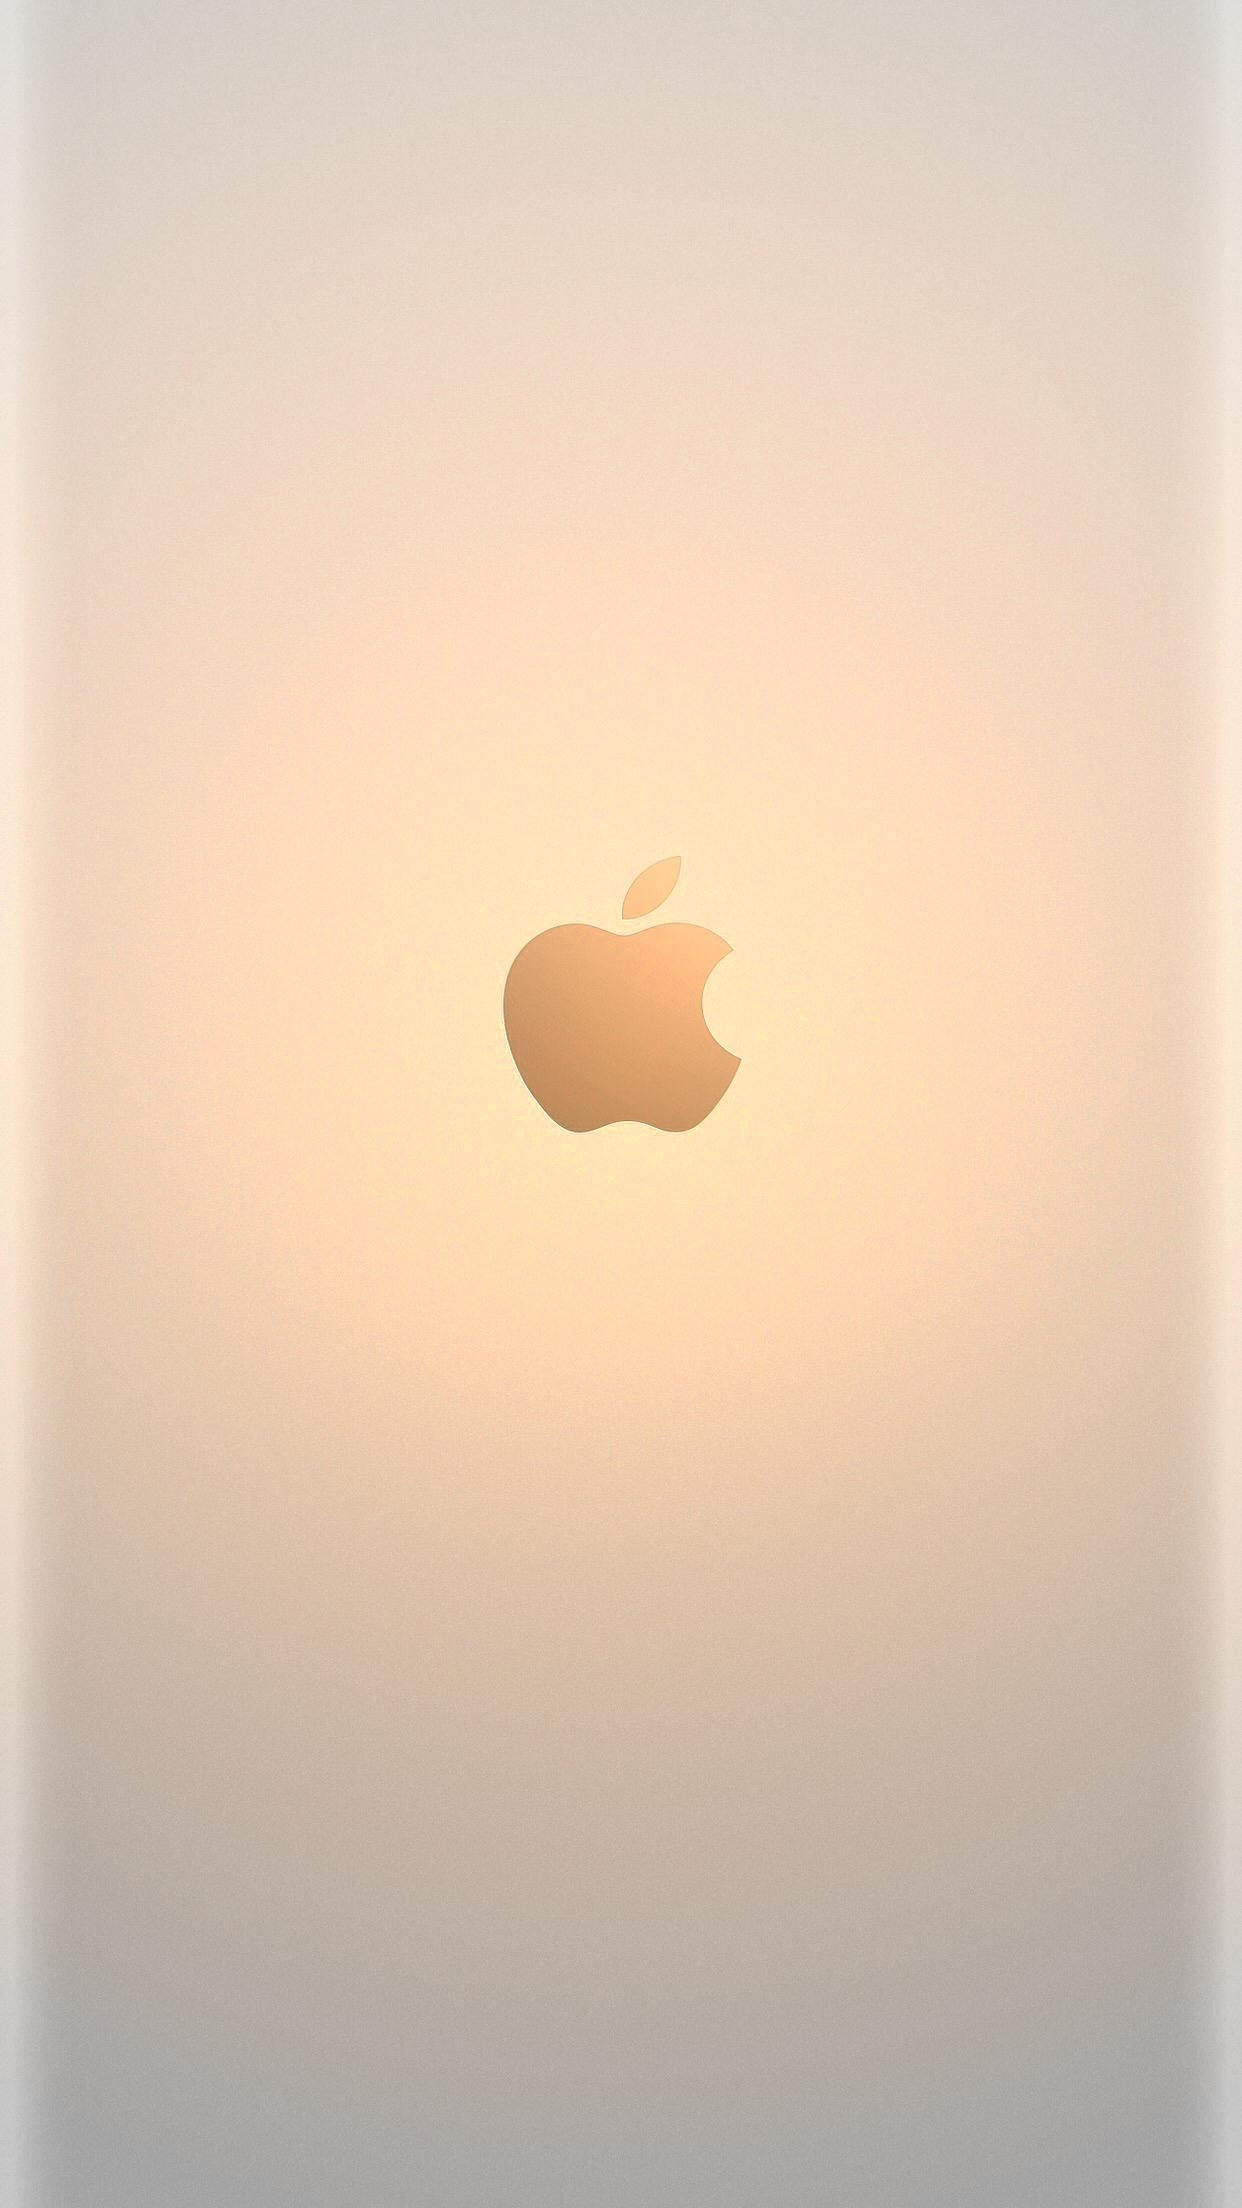 10 Best Rose Gold Wallpaper Iphone 7 Full Hd 1920 1080 For Pc Background